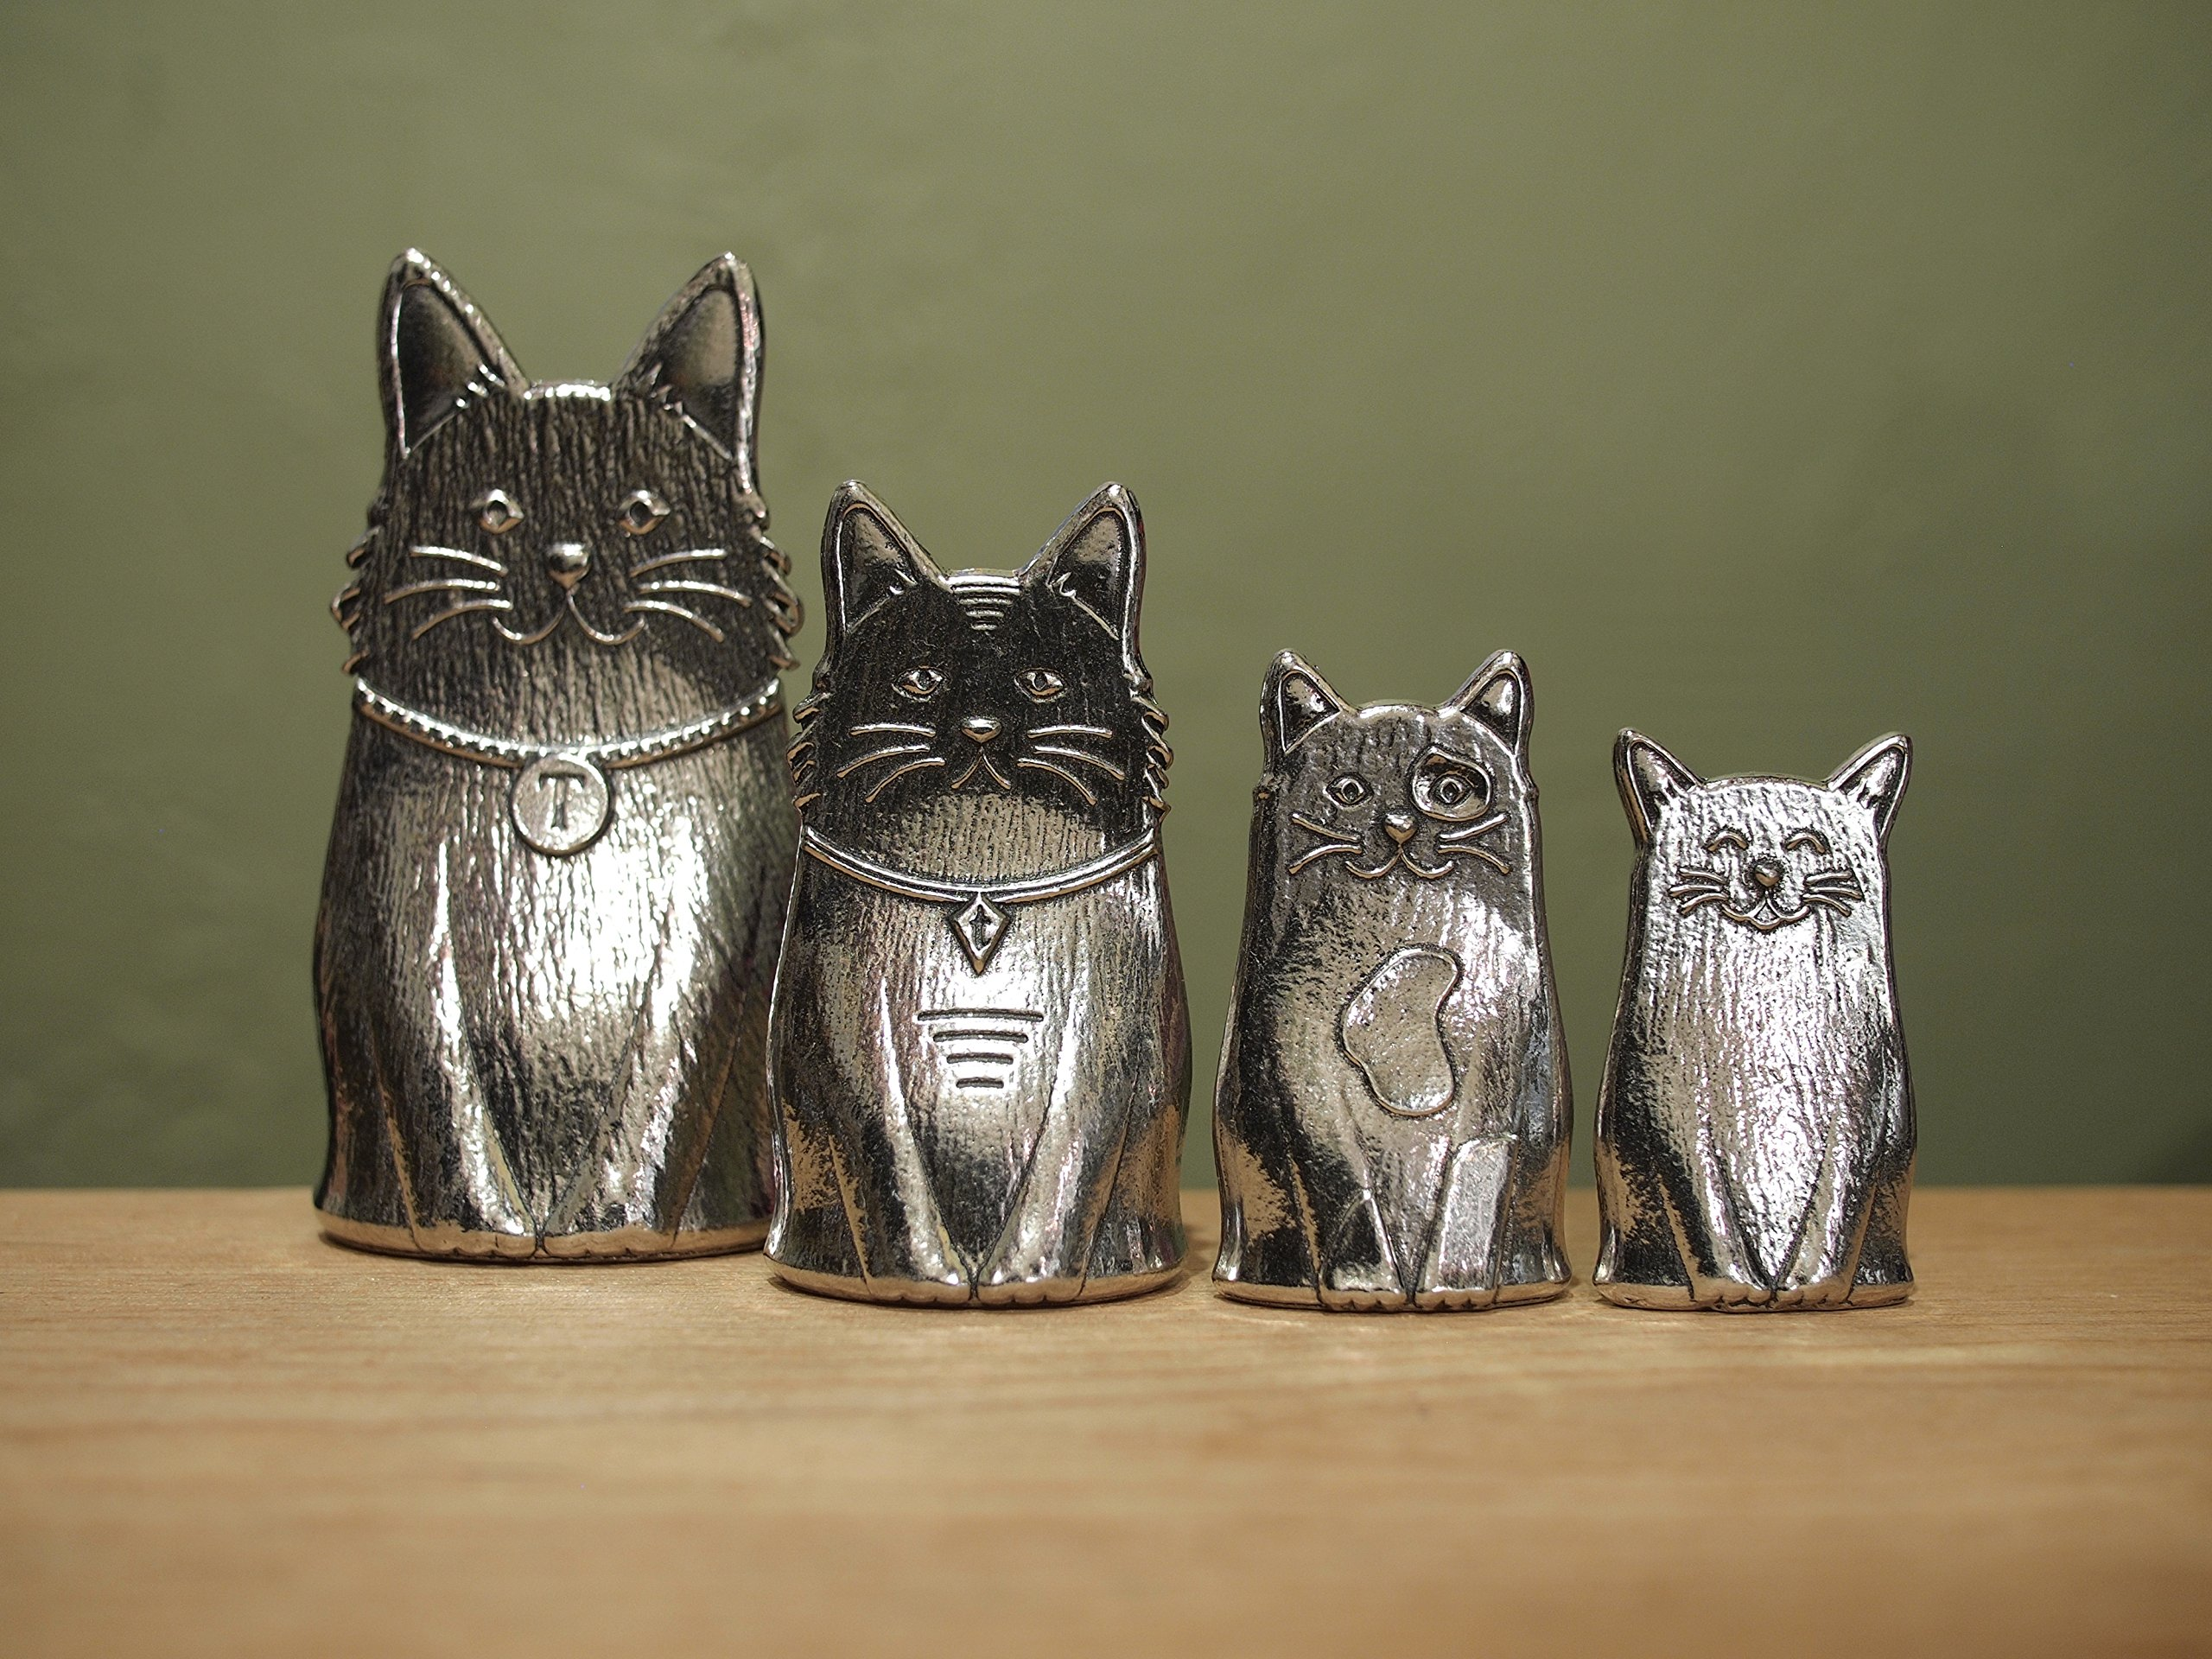 Family of Cats Pewter Measuring Spoons by Roosfoos